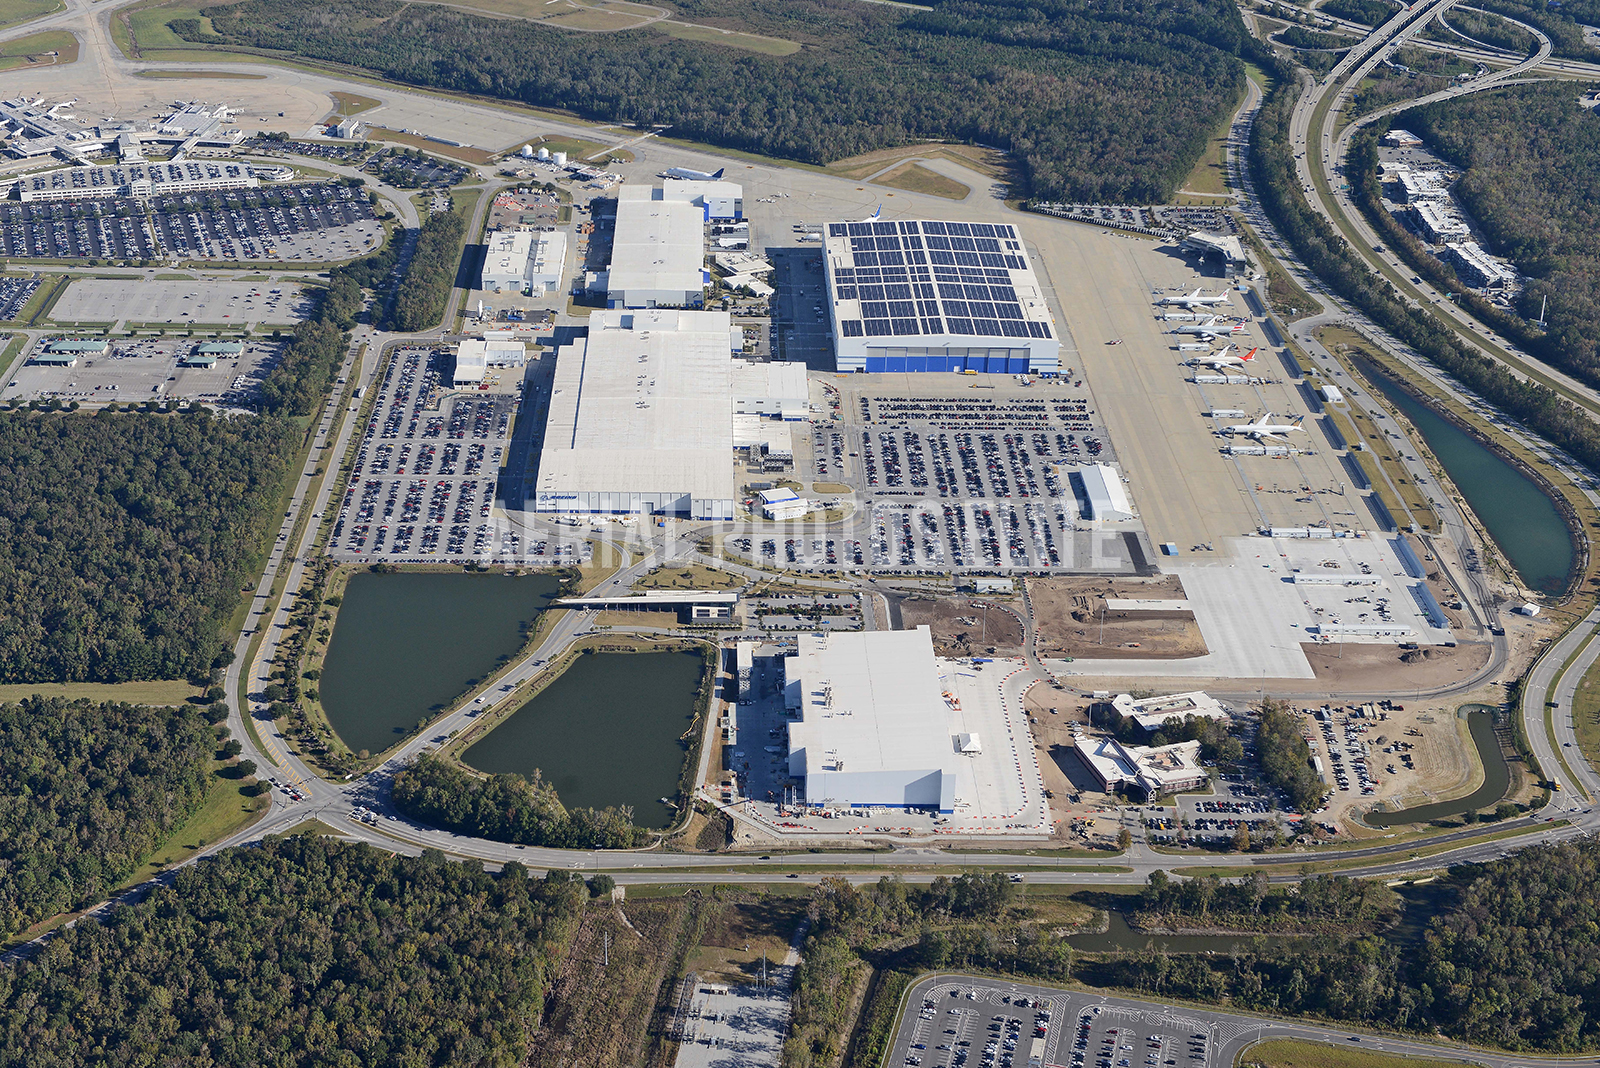 Boeing Charleston, SC | Aerial Photos Elite | Aerial Photos Elite